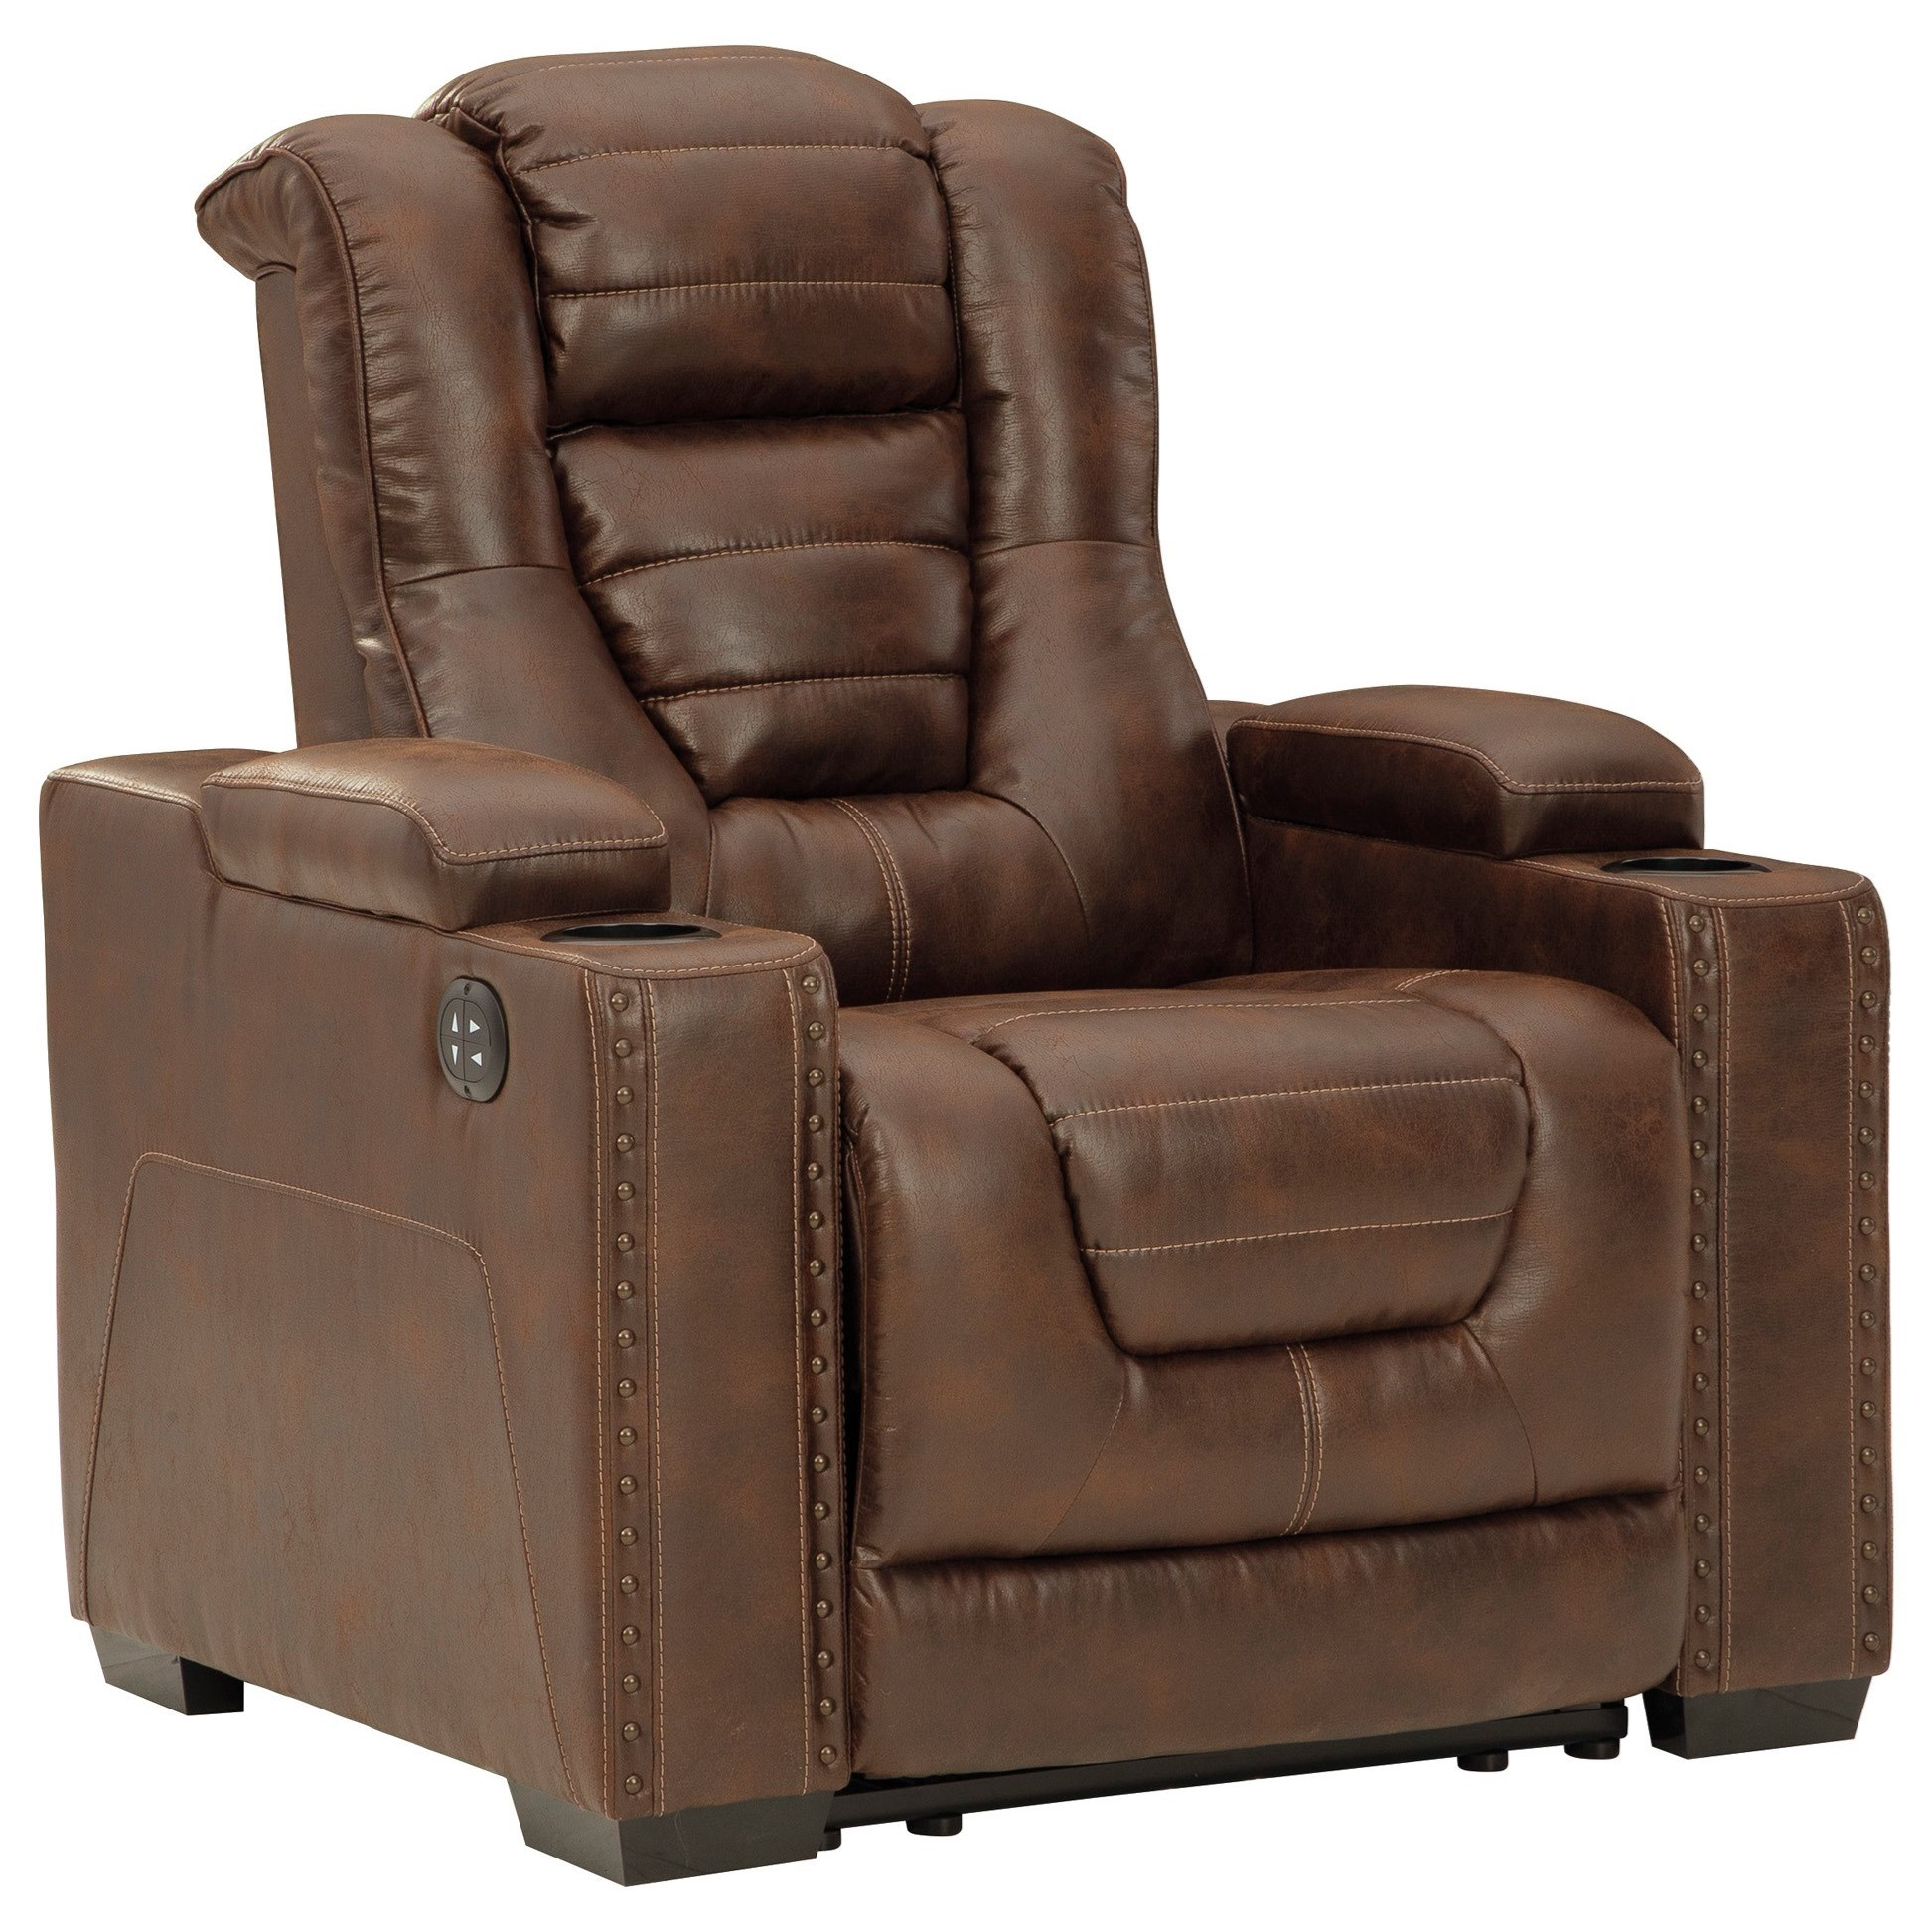 Owner's Box Power Recliner with Adjustable Headrest by Signature Design by Ashley at Value City Furniture